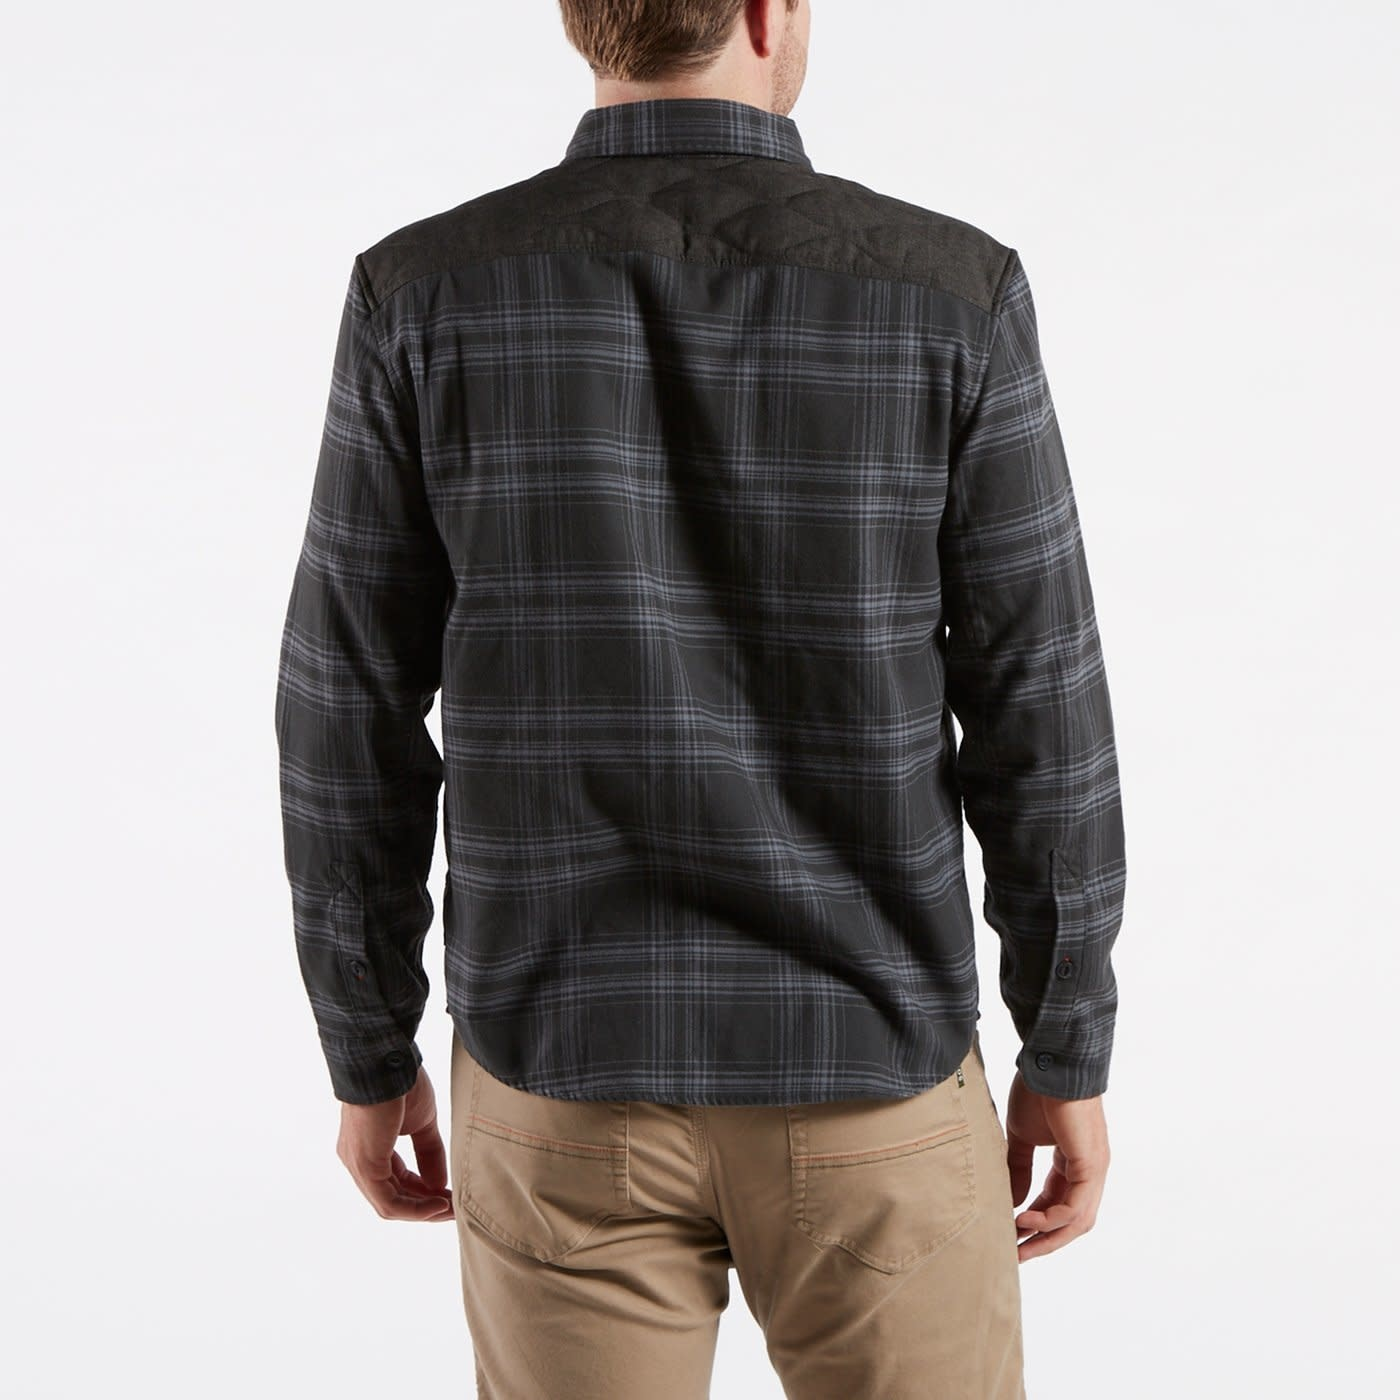 Howler Brothers Howler Brothers Men's Quintana Quilted Flannel